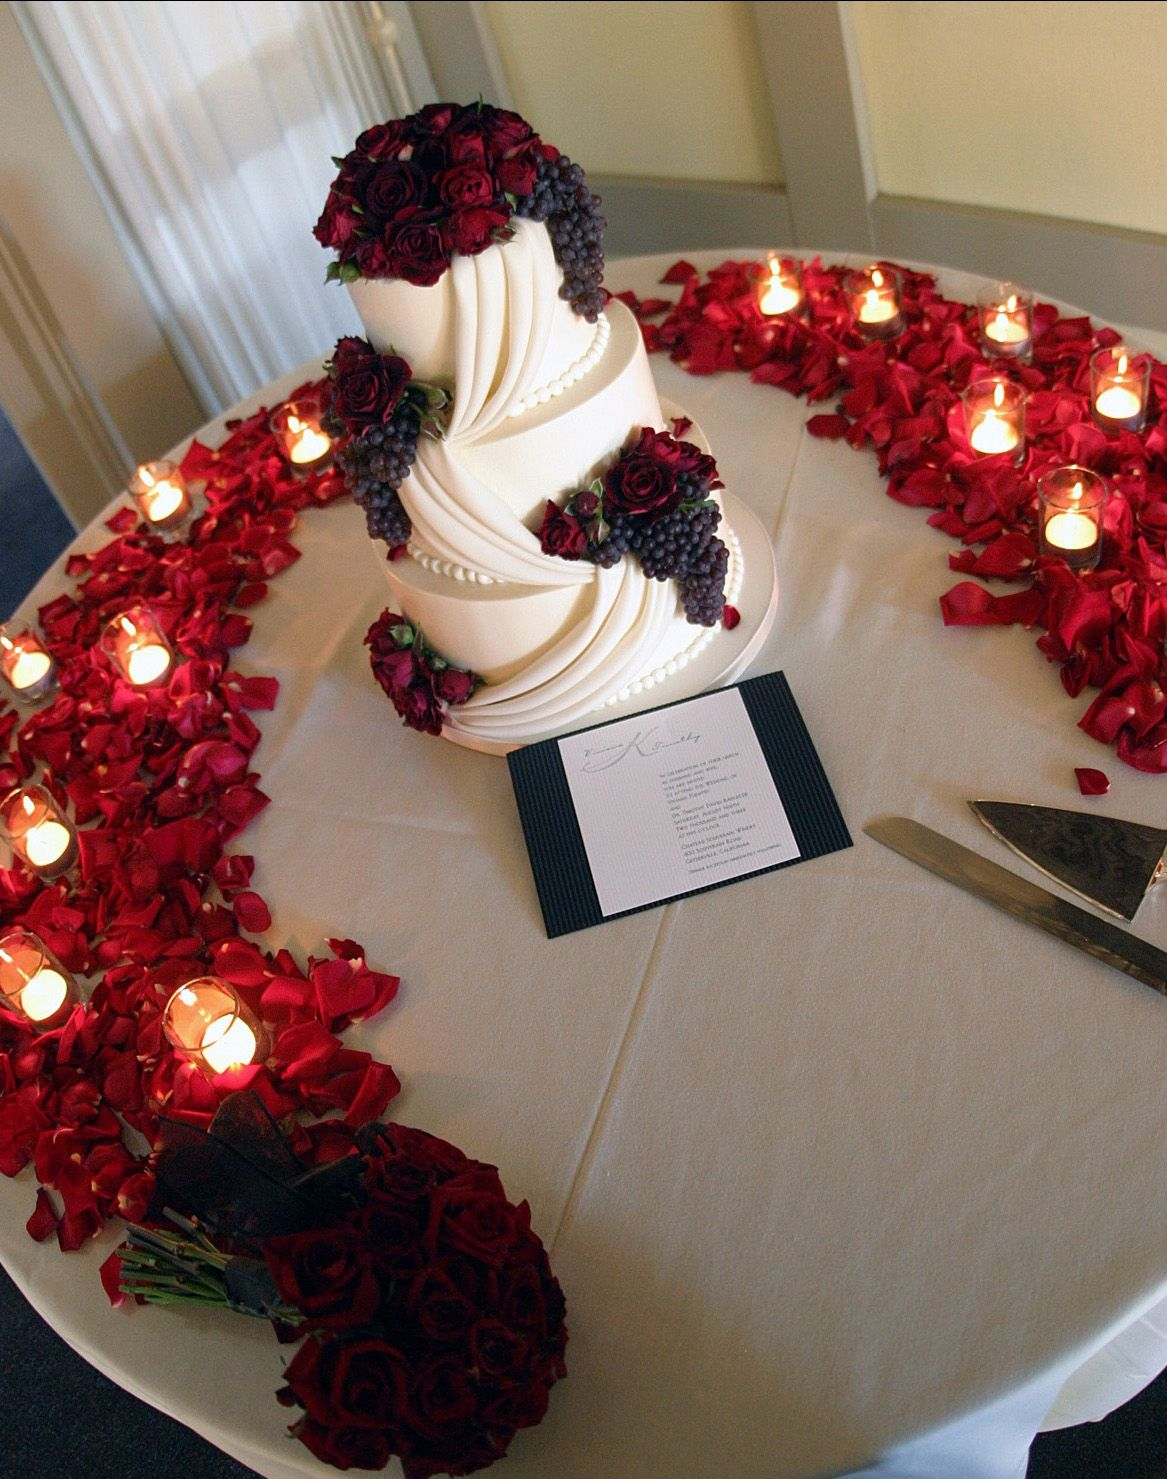 Pin By Liz Spears On My Style Wedding Cake Table Wedding Decorations Wedding Table